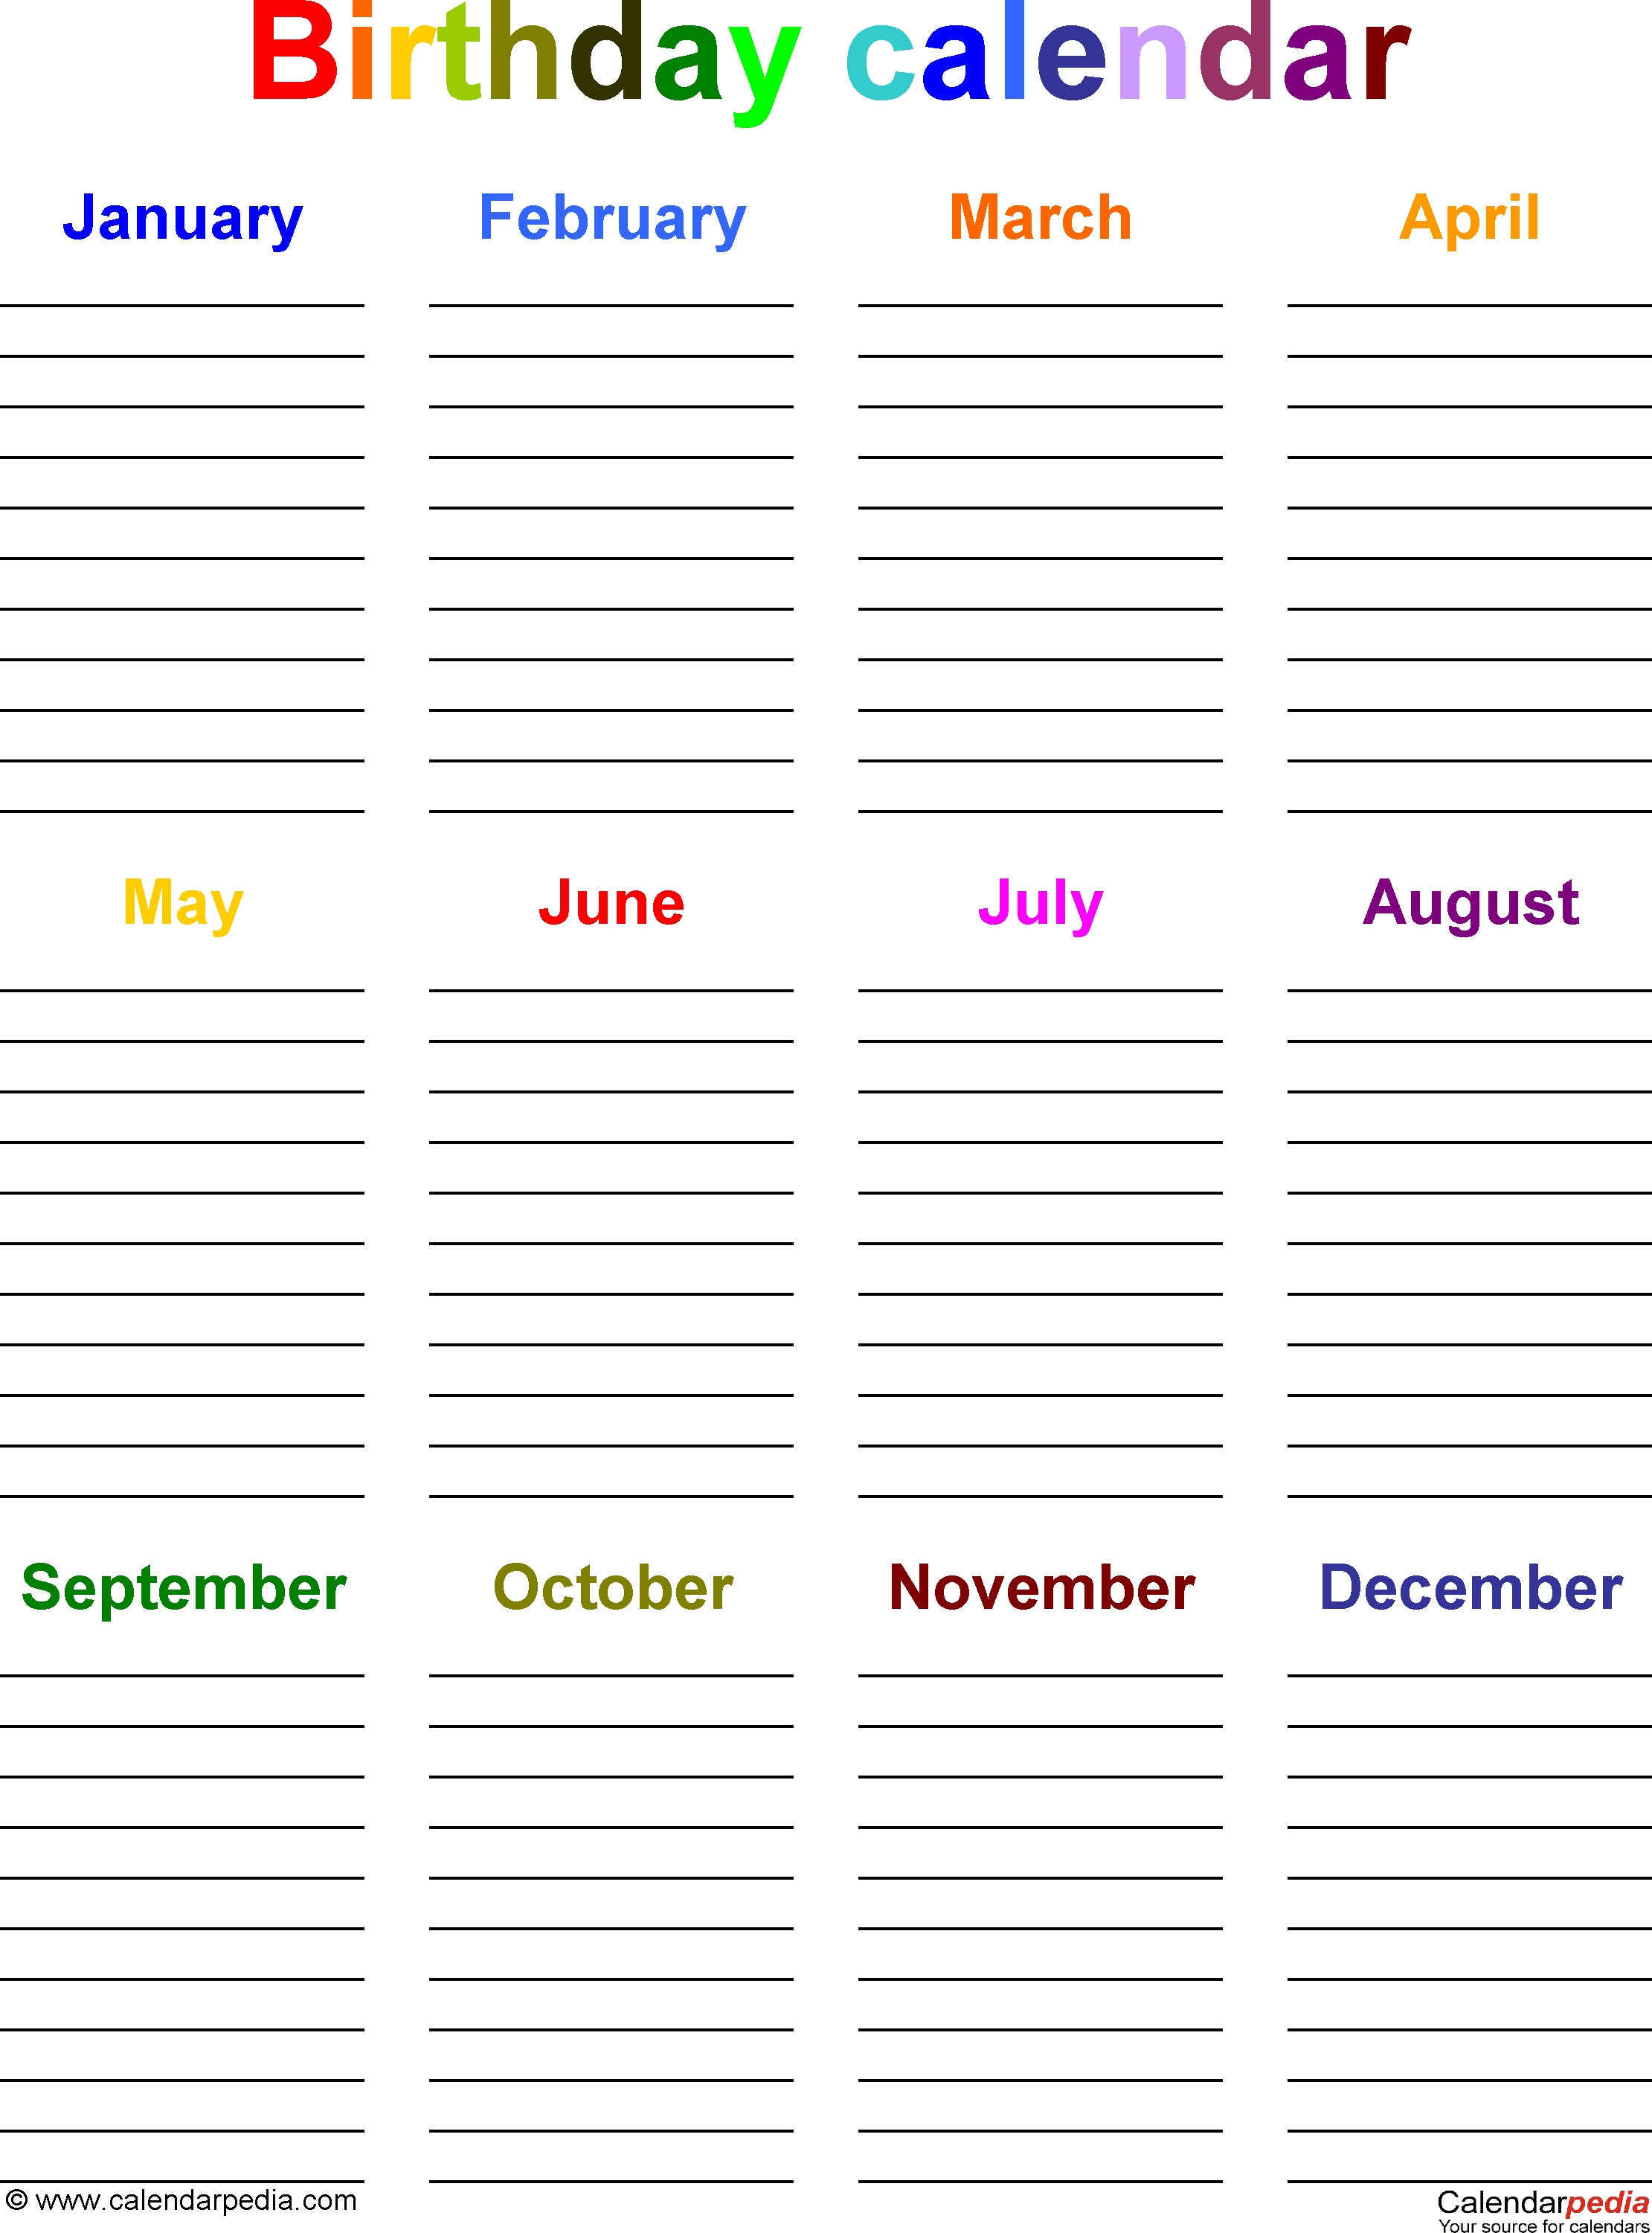 Birthday Calendars - 7 Free Printable Word Templates-Monthly Calendar List Template